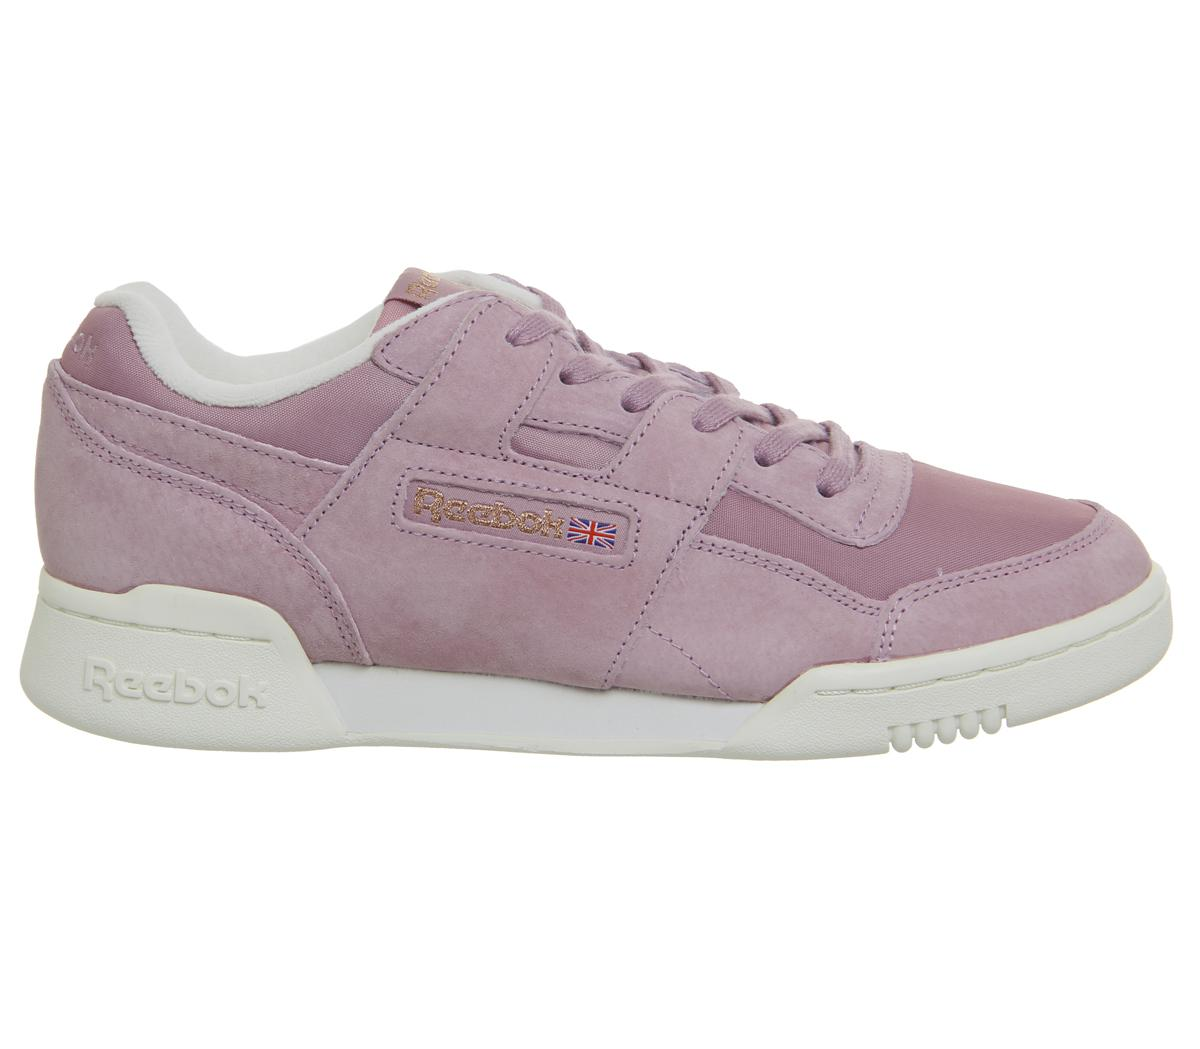 b4ab3a138bc Reebok Workout Lo Plus in Purple - Save 22.22222222222223% - Lyst